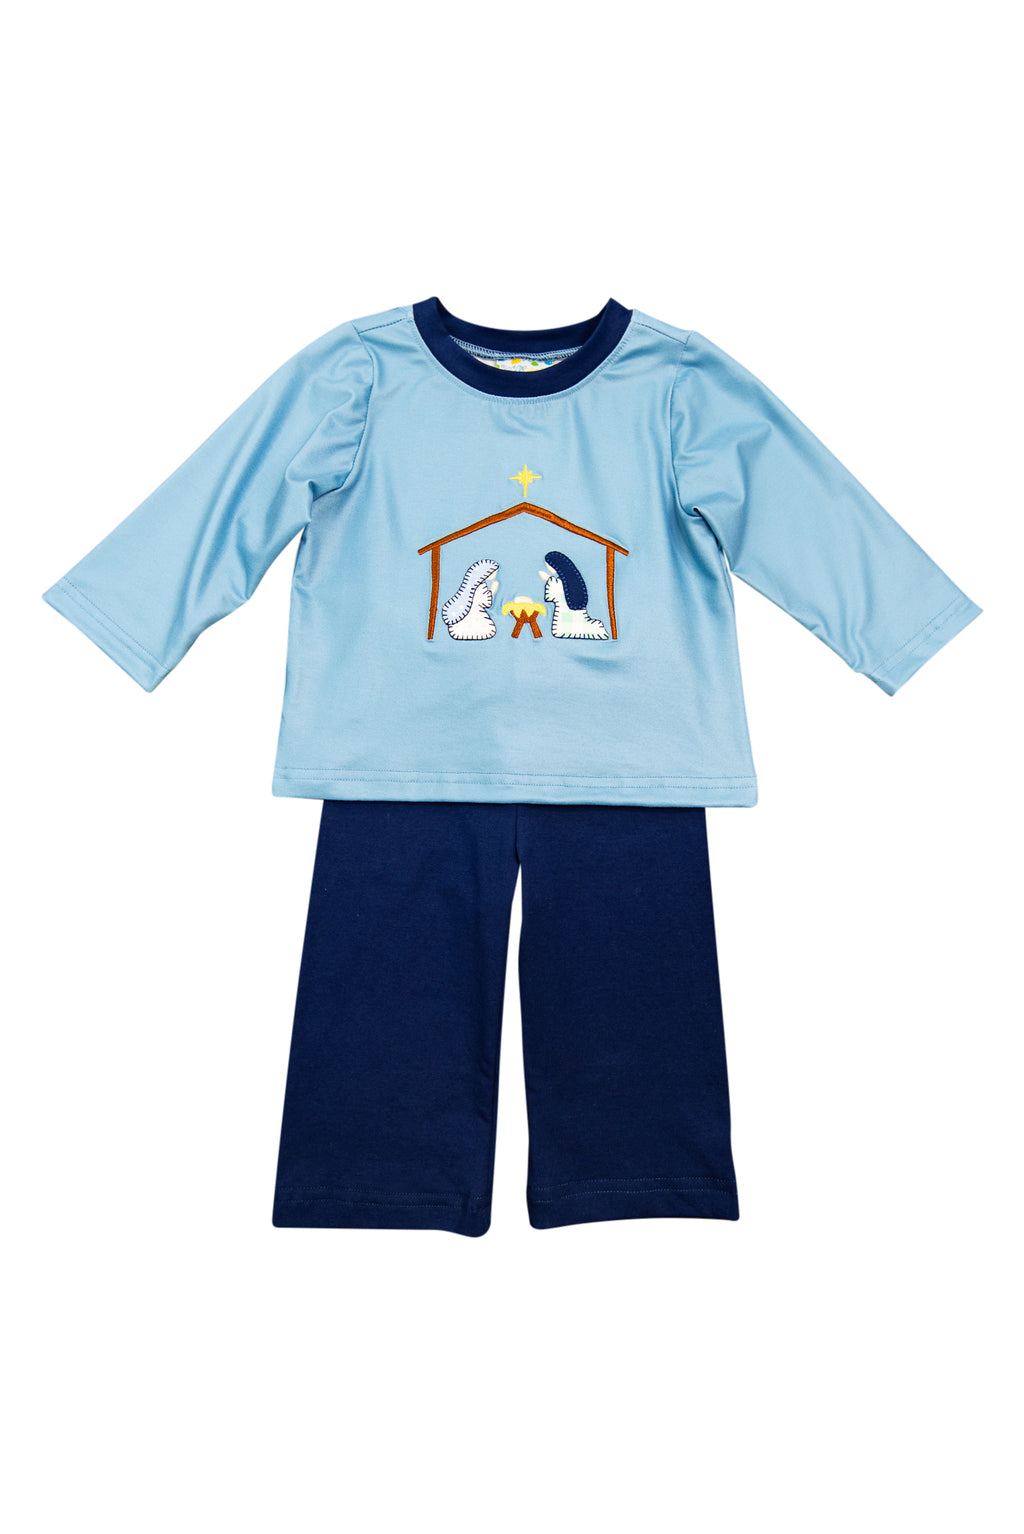 Boys Nativity Pant Set